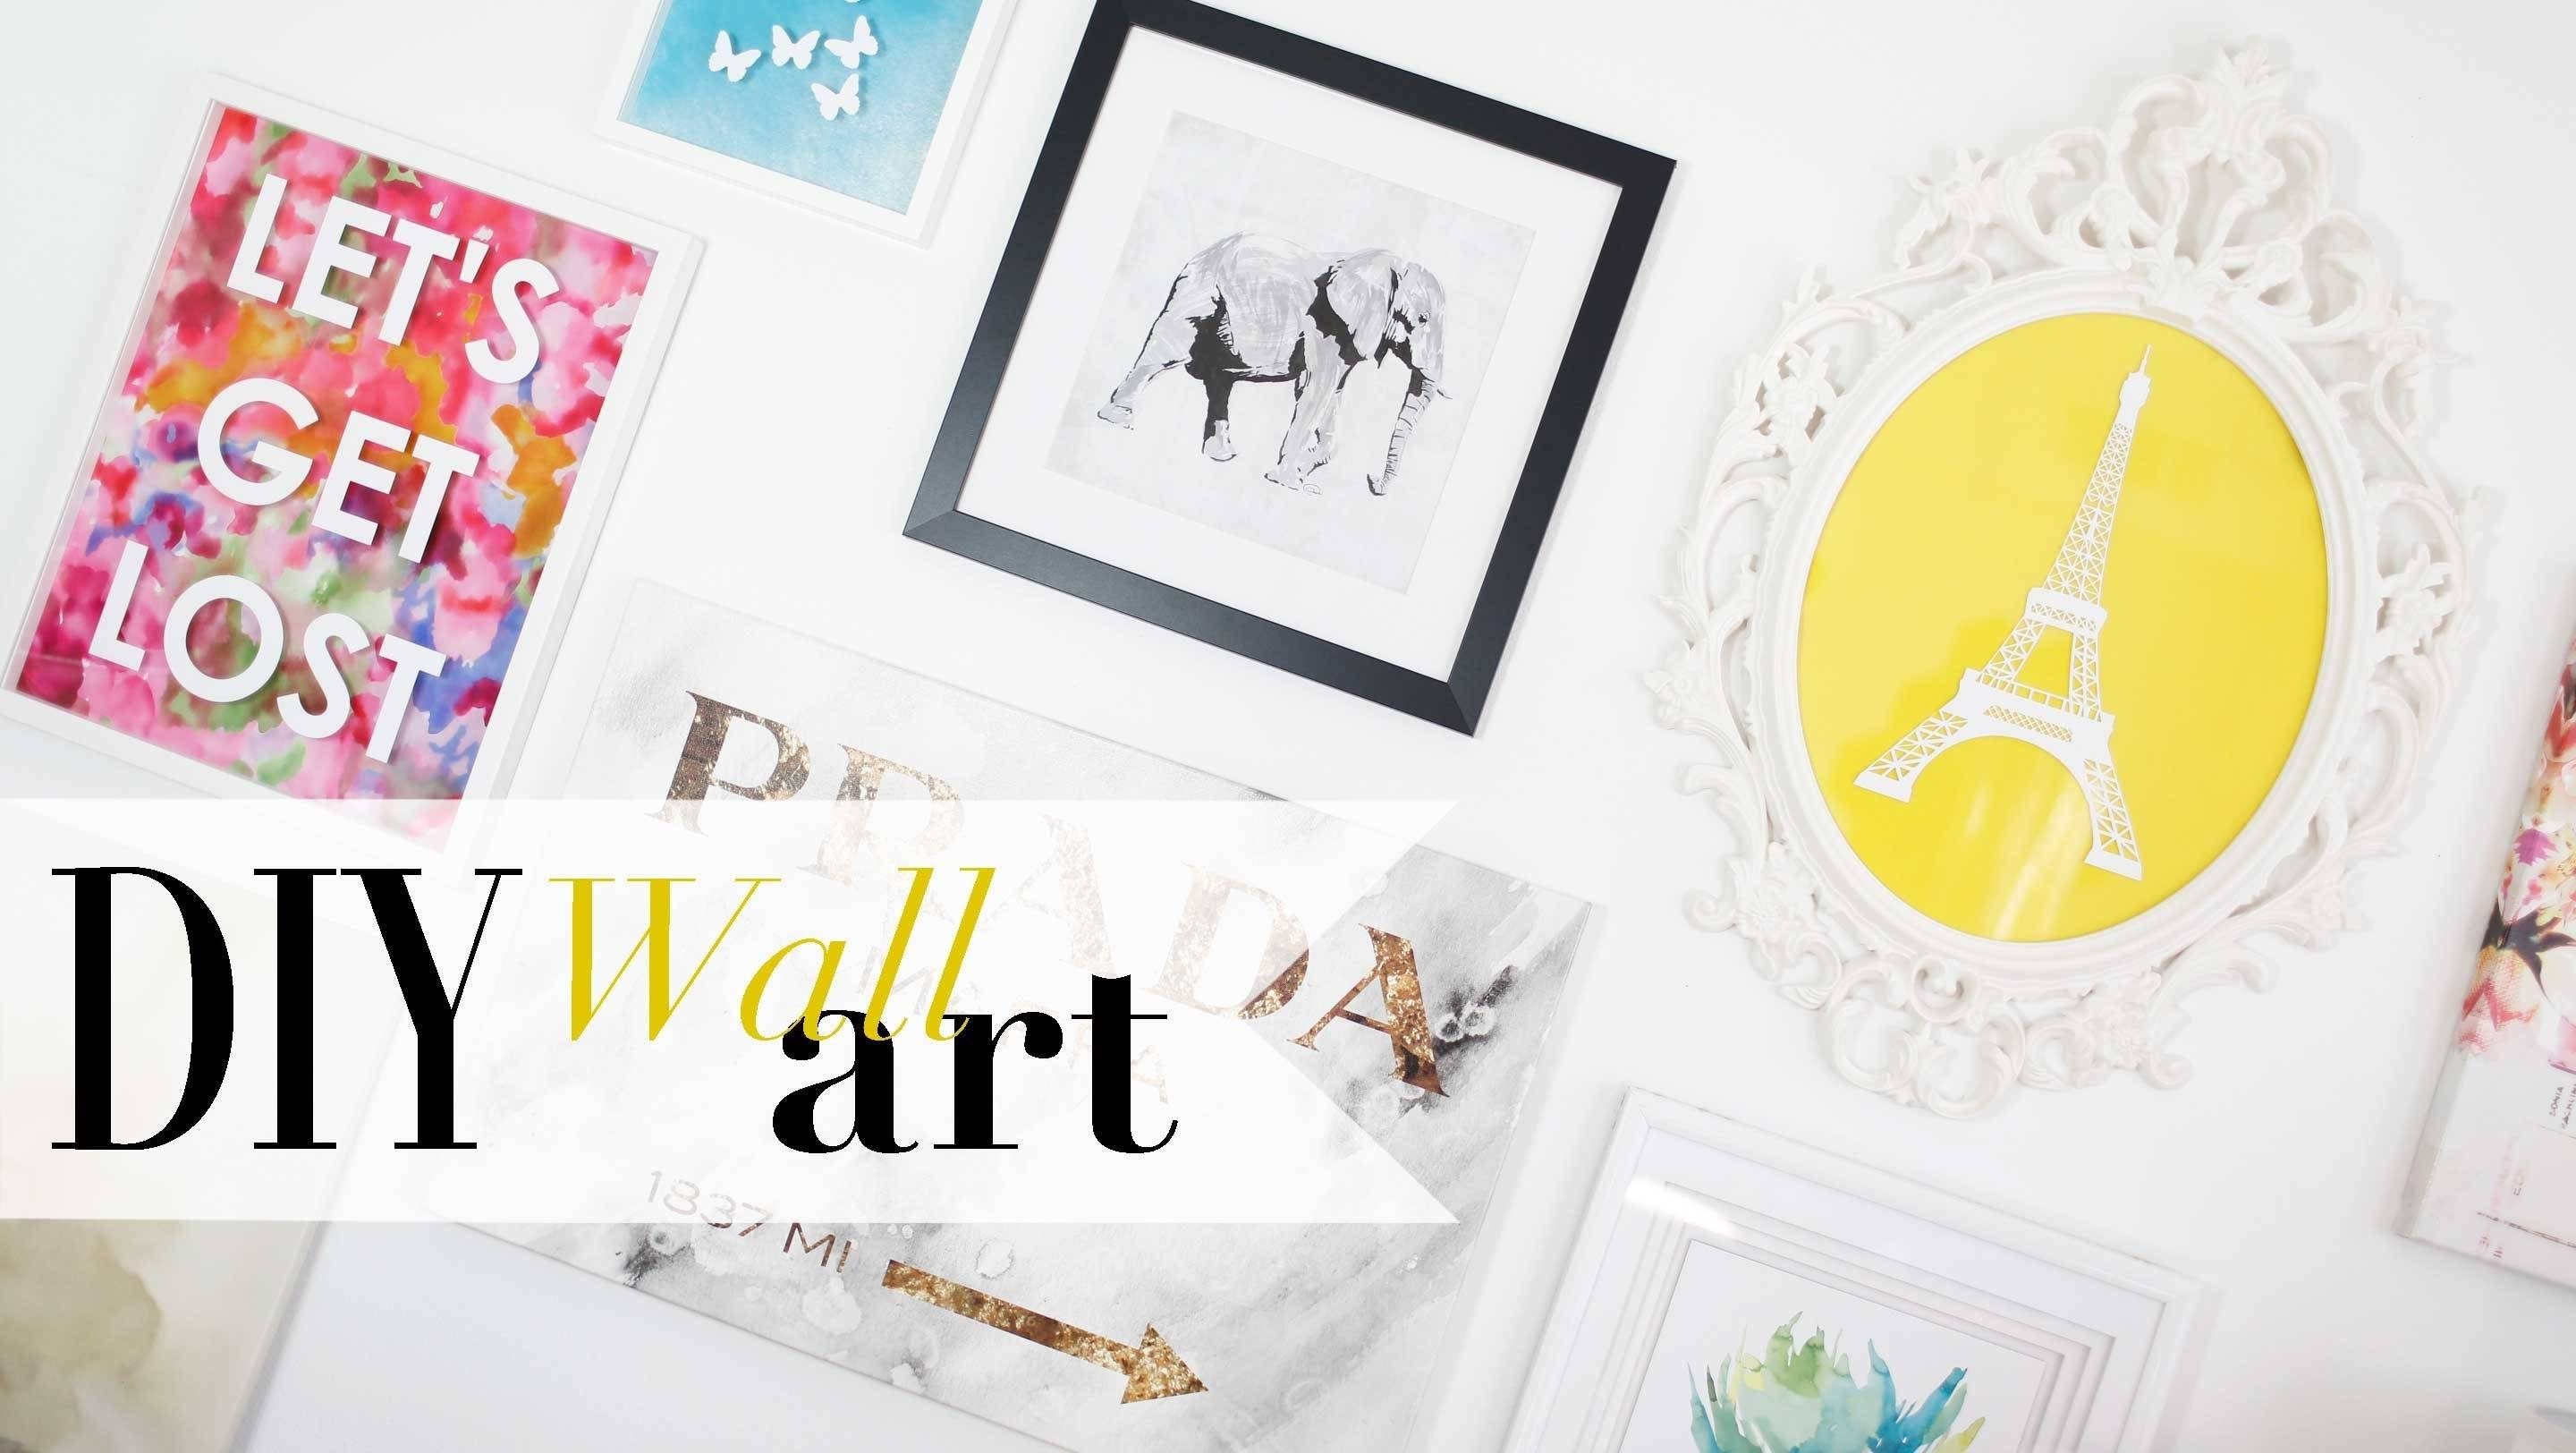 Diy Tumblr Gallery Wall Art Pinterest Inspired | Ann Le – Youtube In Most Popular Prada Wall Art (View 19 of 25)